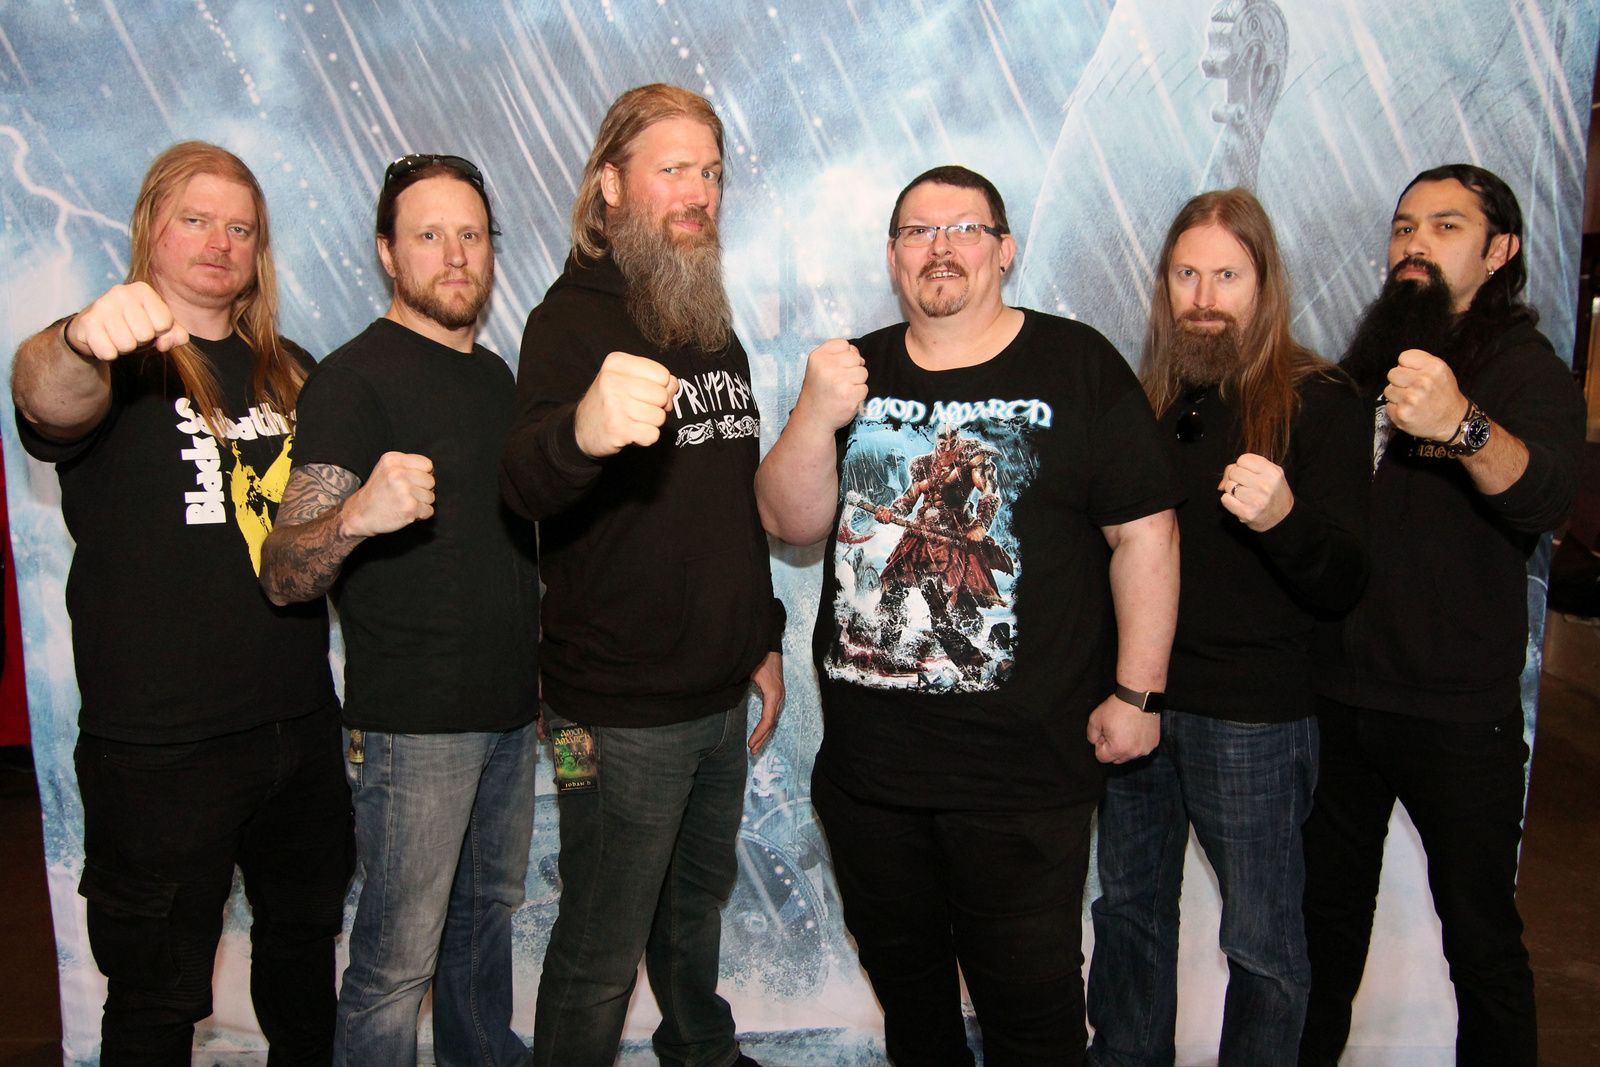 Viv very important vikings meet and greet with amon amart 2503 meet and greet with amon amart 25032017 cologne kristyandbryce Choice Image